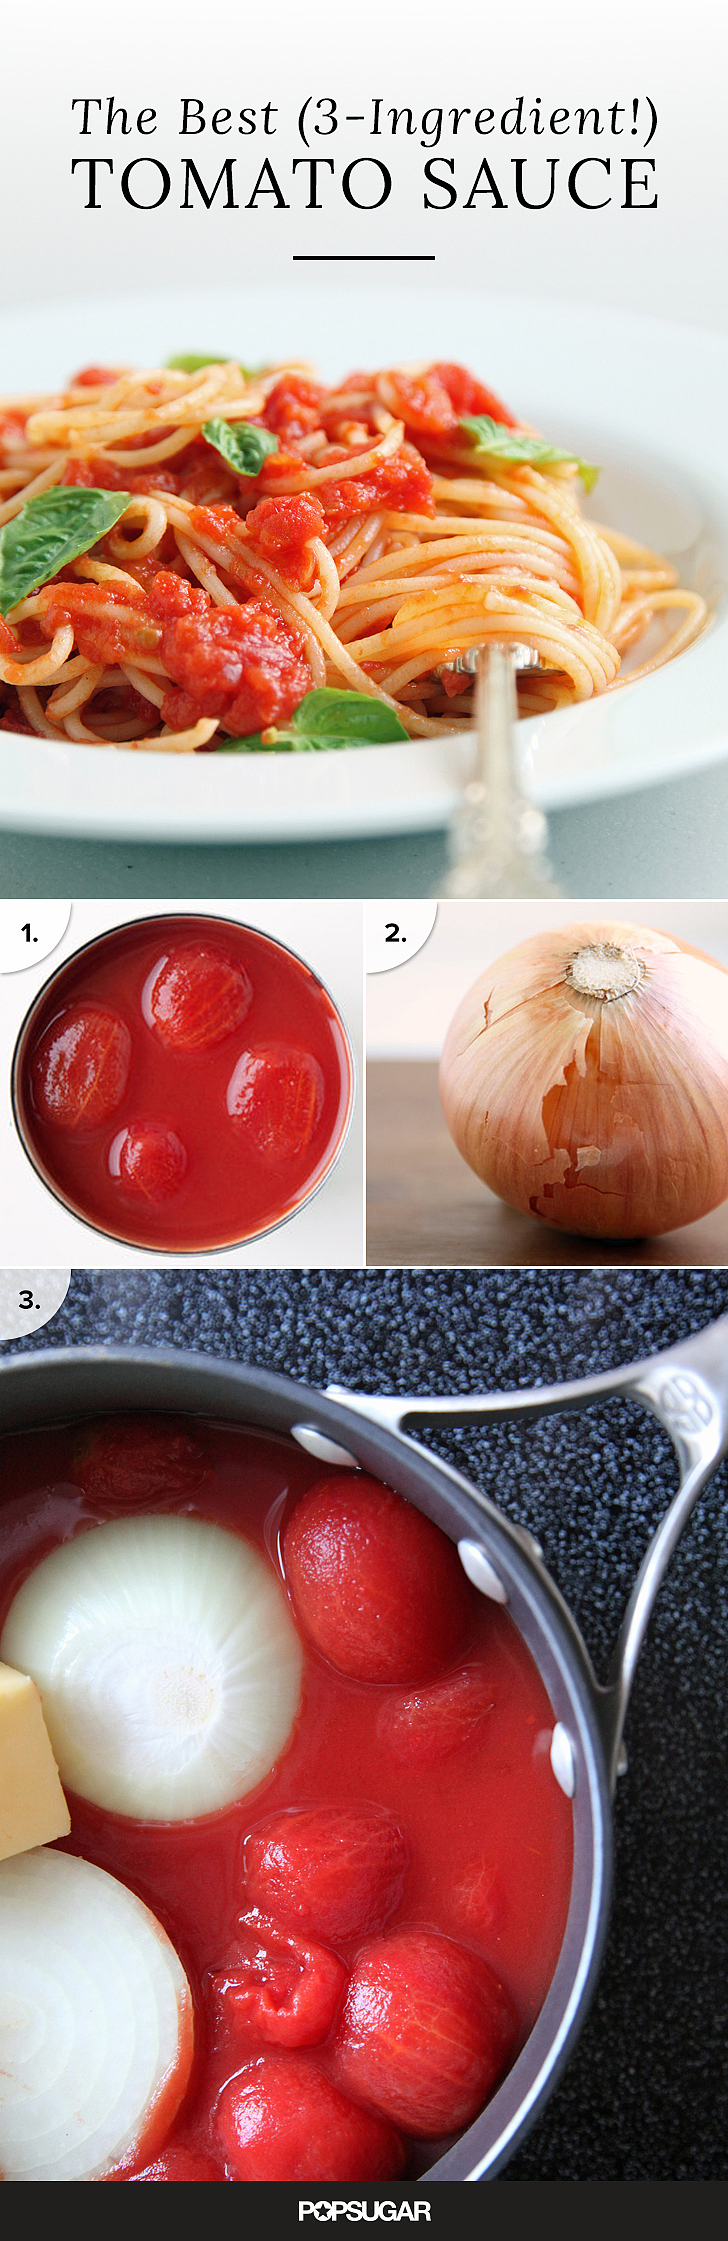 Easy tomato sauce recipe popsugar uk food for Cuisine 5 ingredients